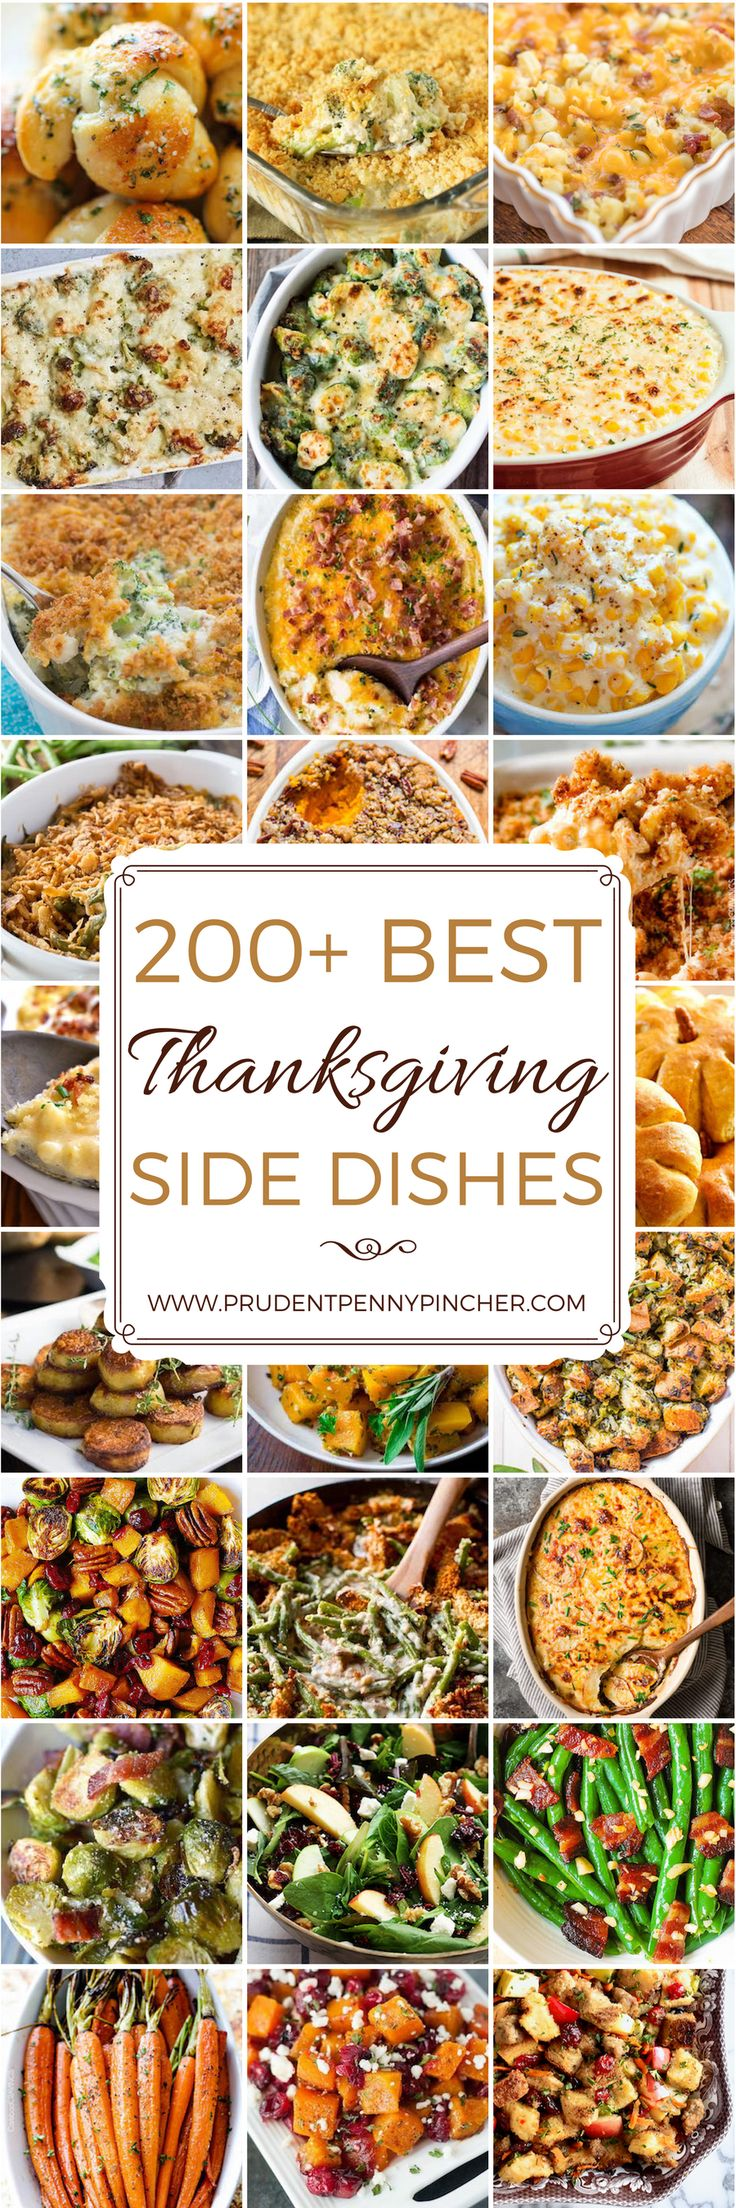 200 Best Thanksgiving Recipes for Side Dishes